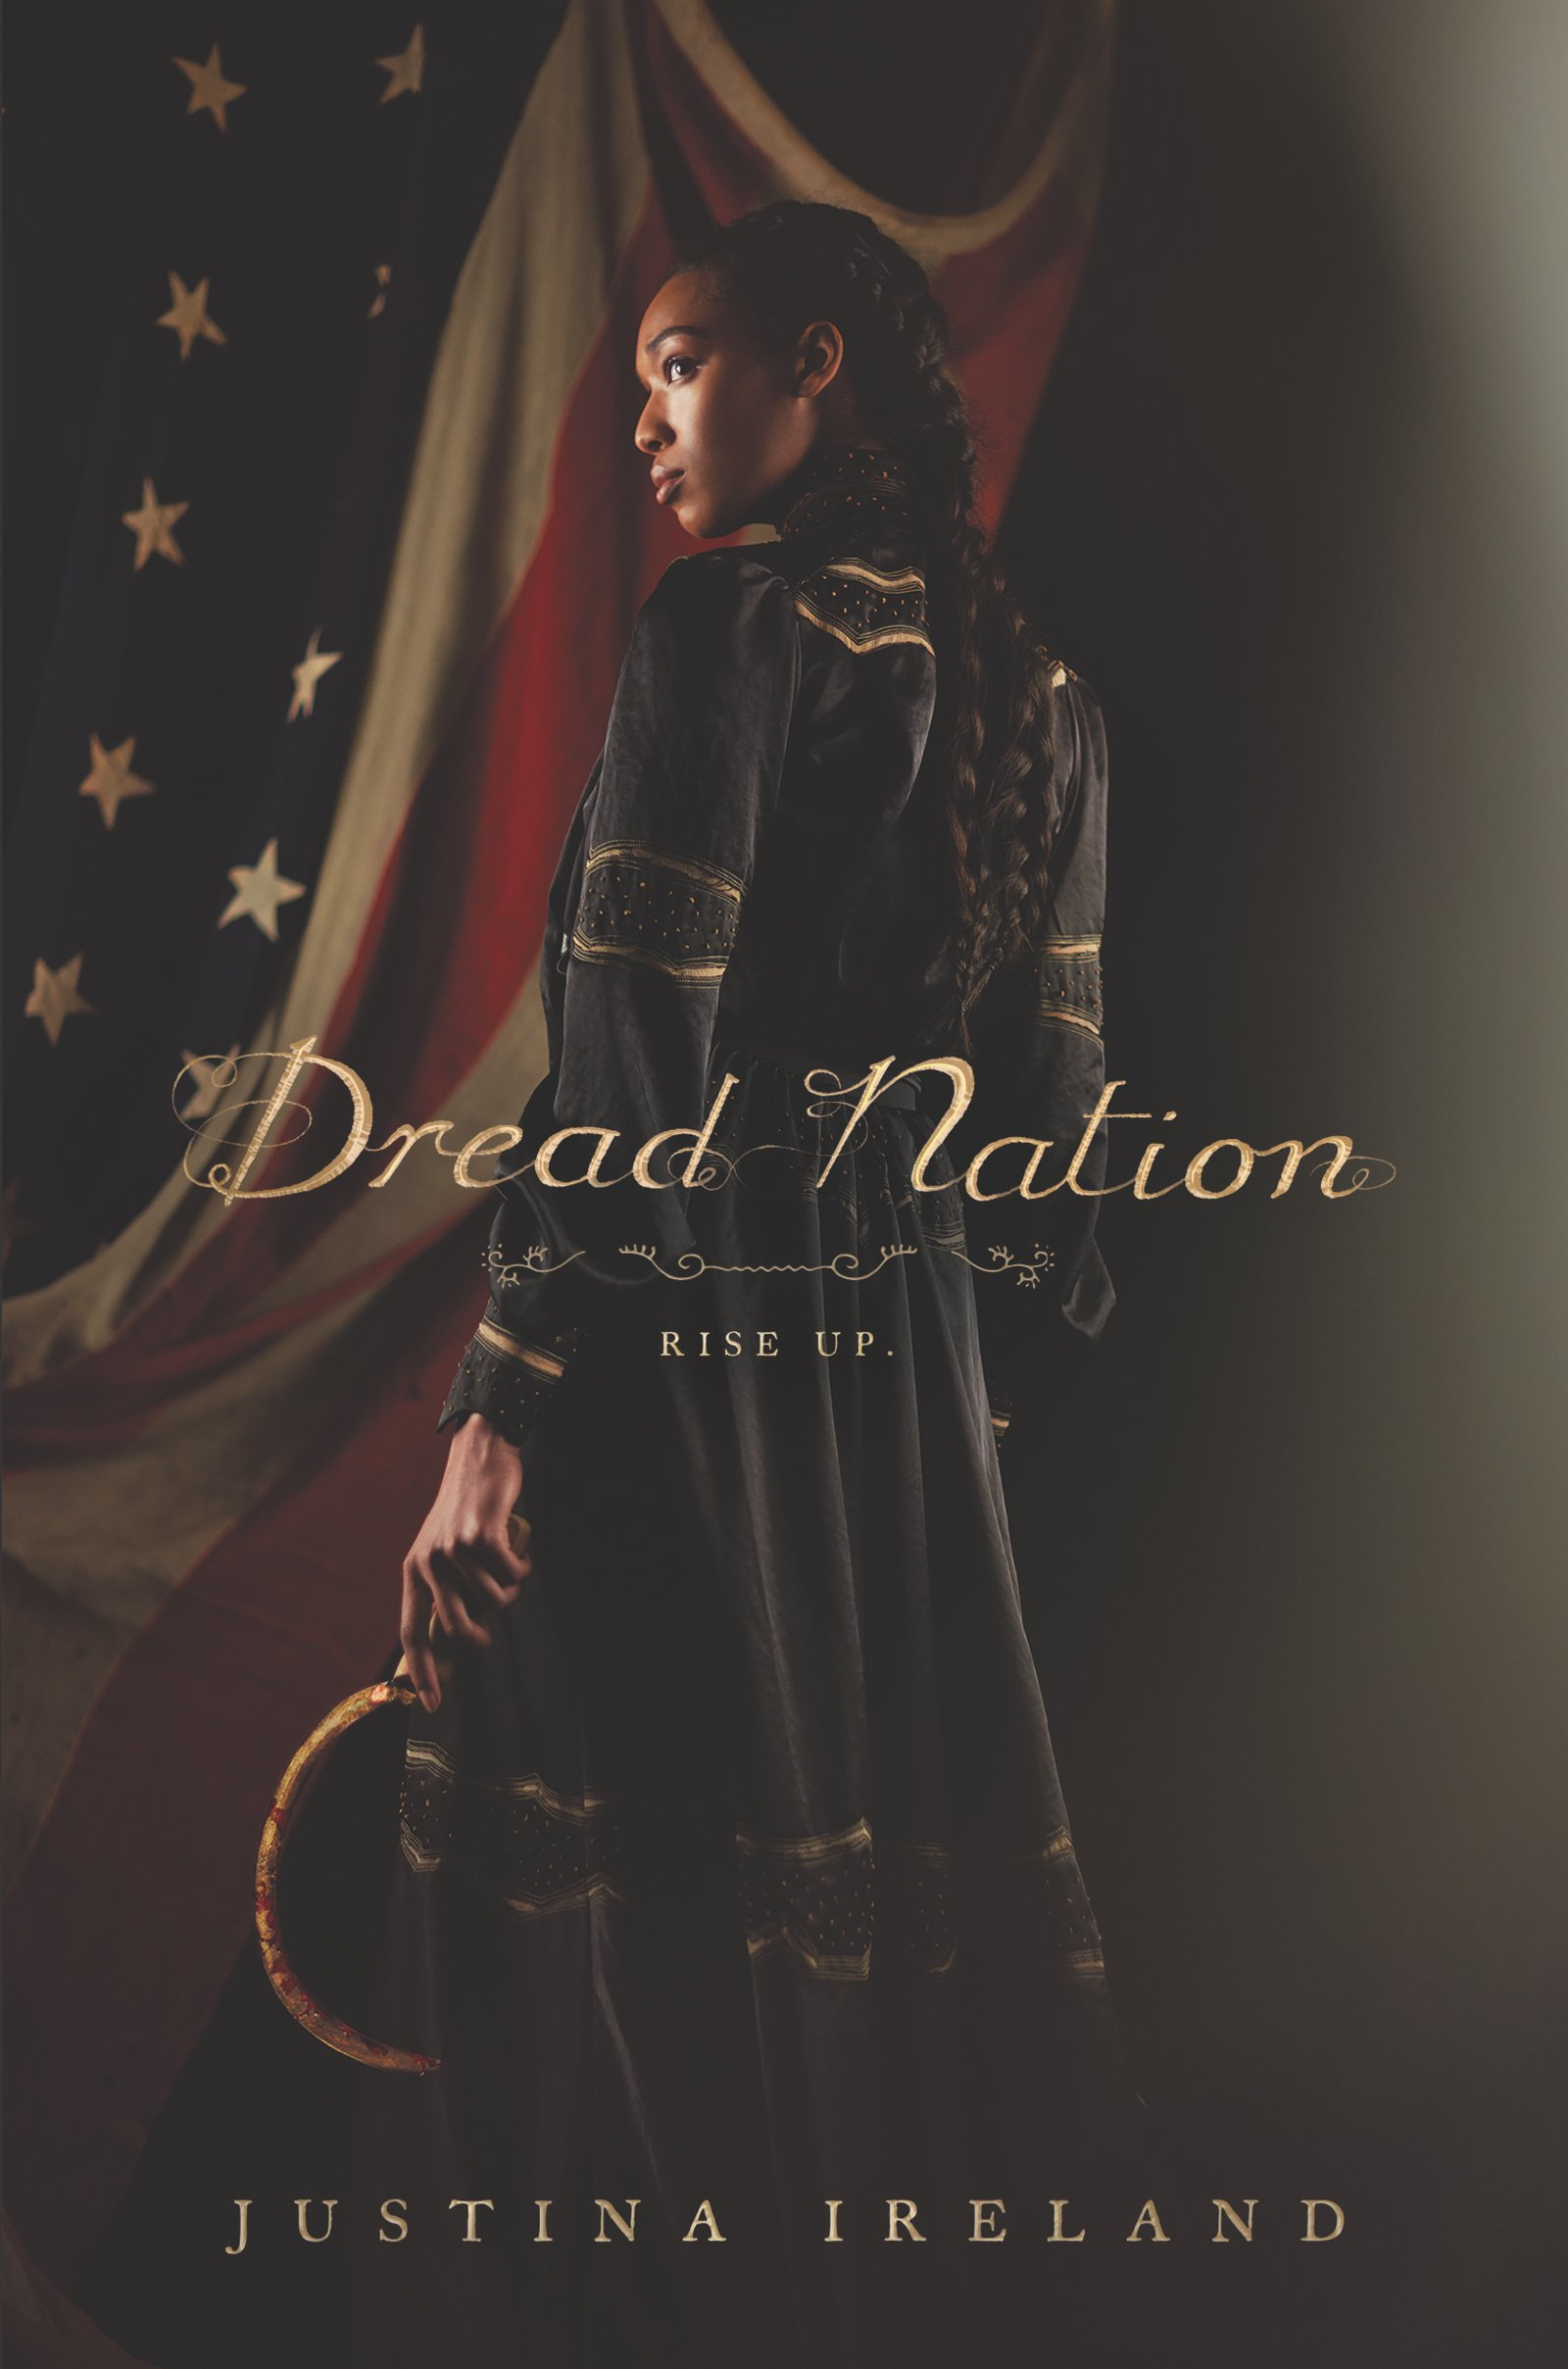 Image result for dread nation book""